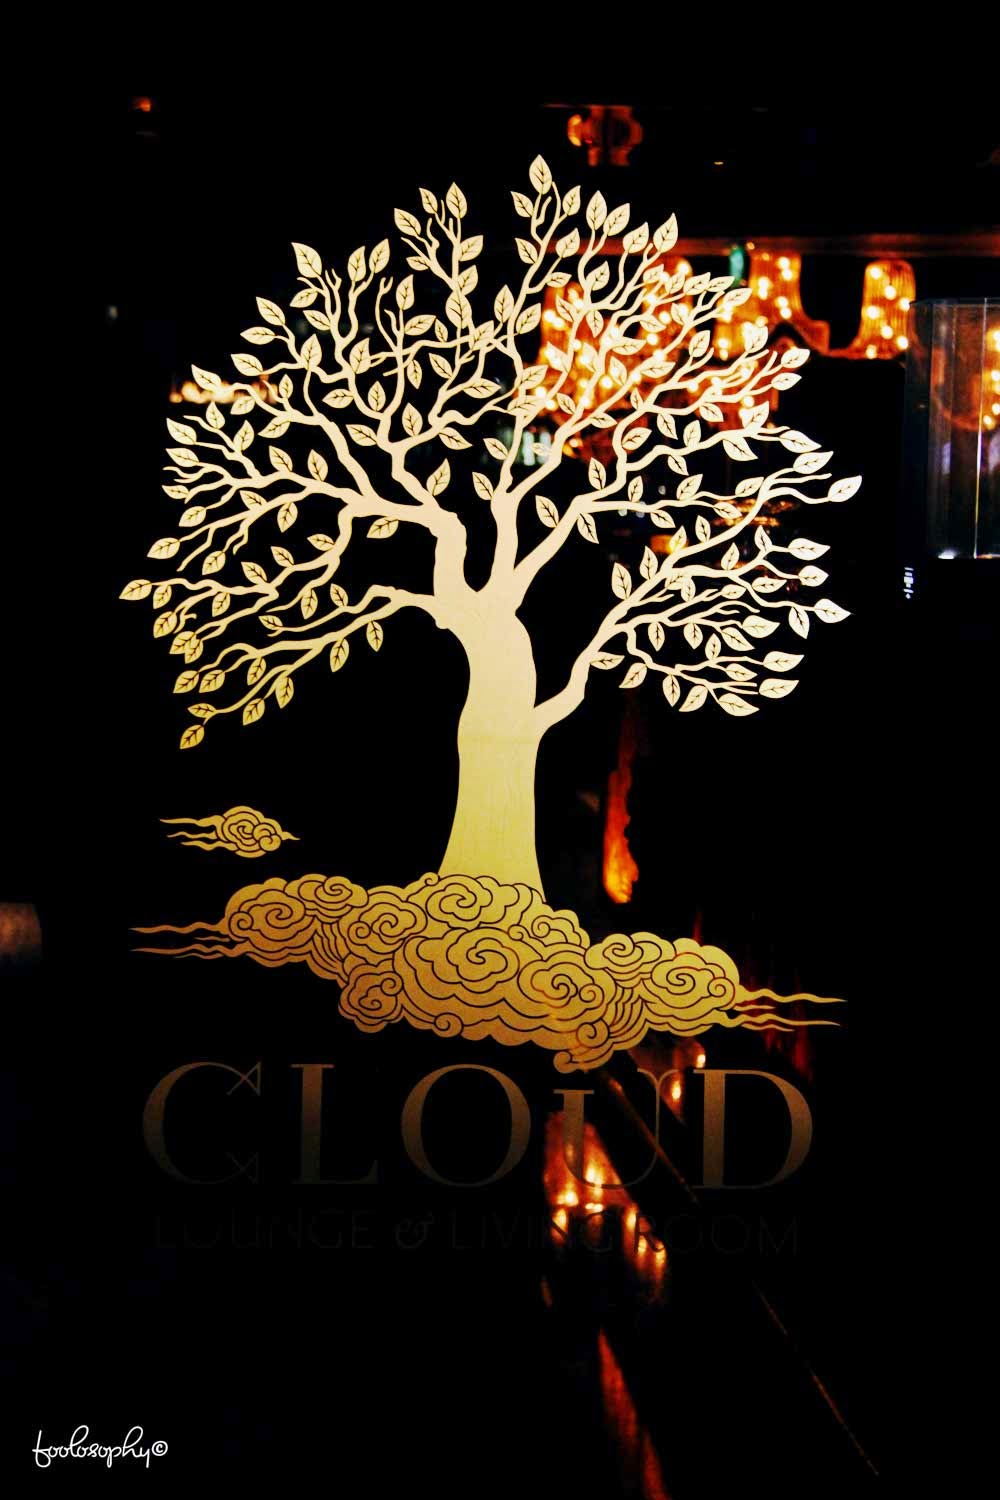 Cloud Lounge And Living Room Jakarta new menu] : cloud lounge & living room - f o o l o s o p h y